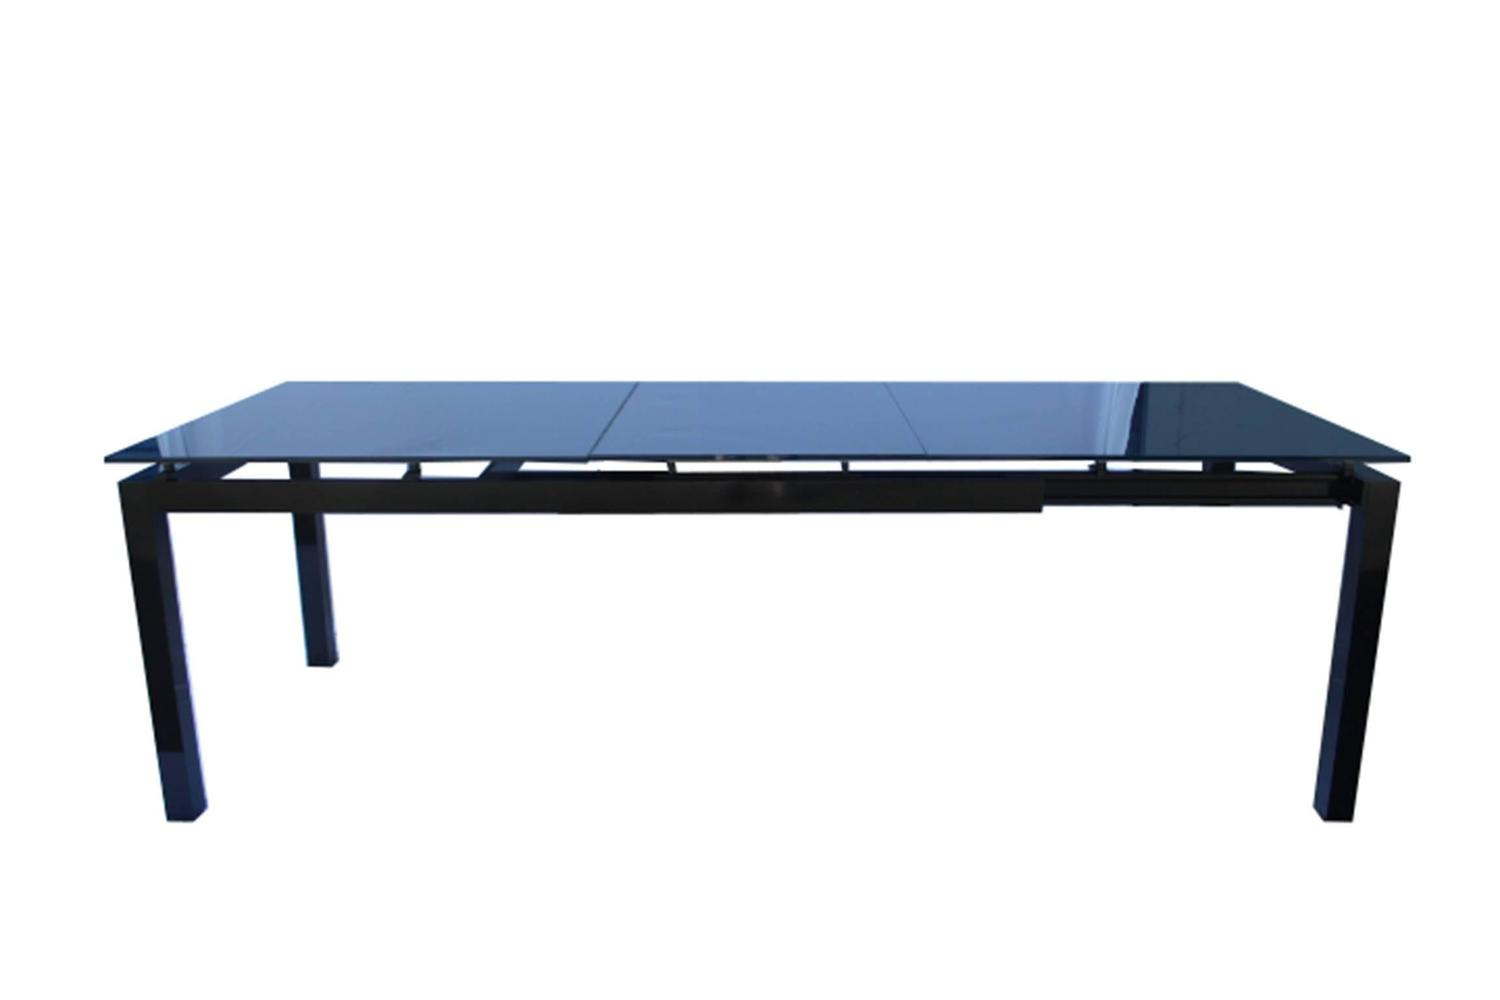 First Glass Dining Table By Ligne Roset For Sale At 1stdibs